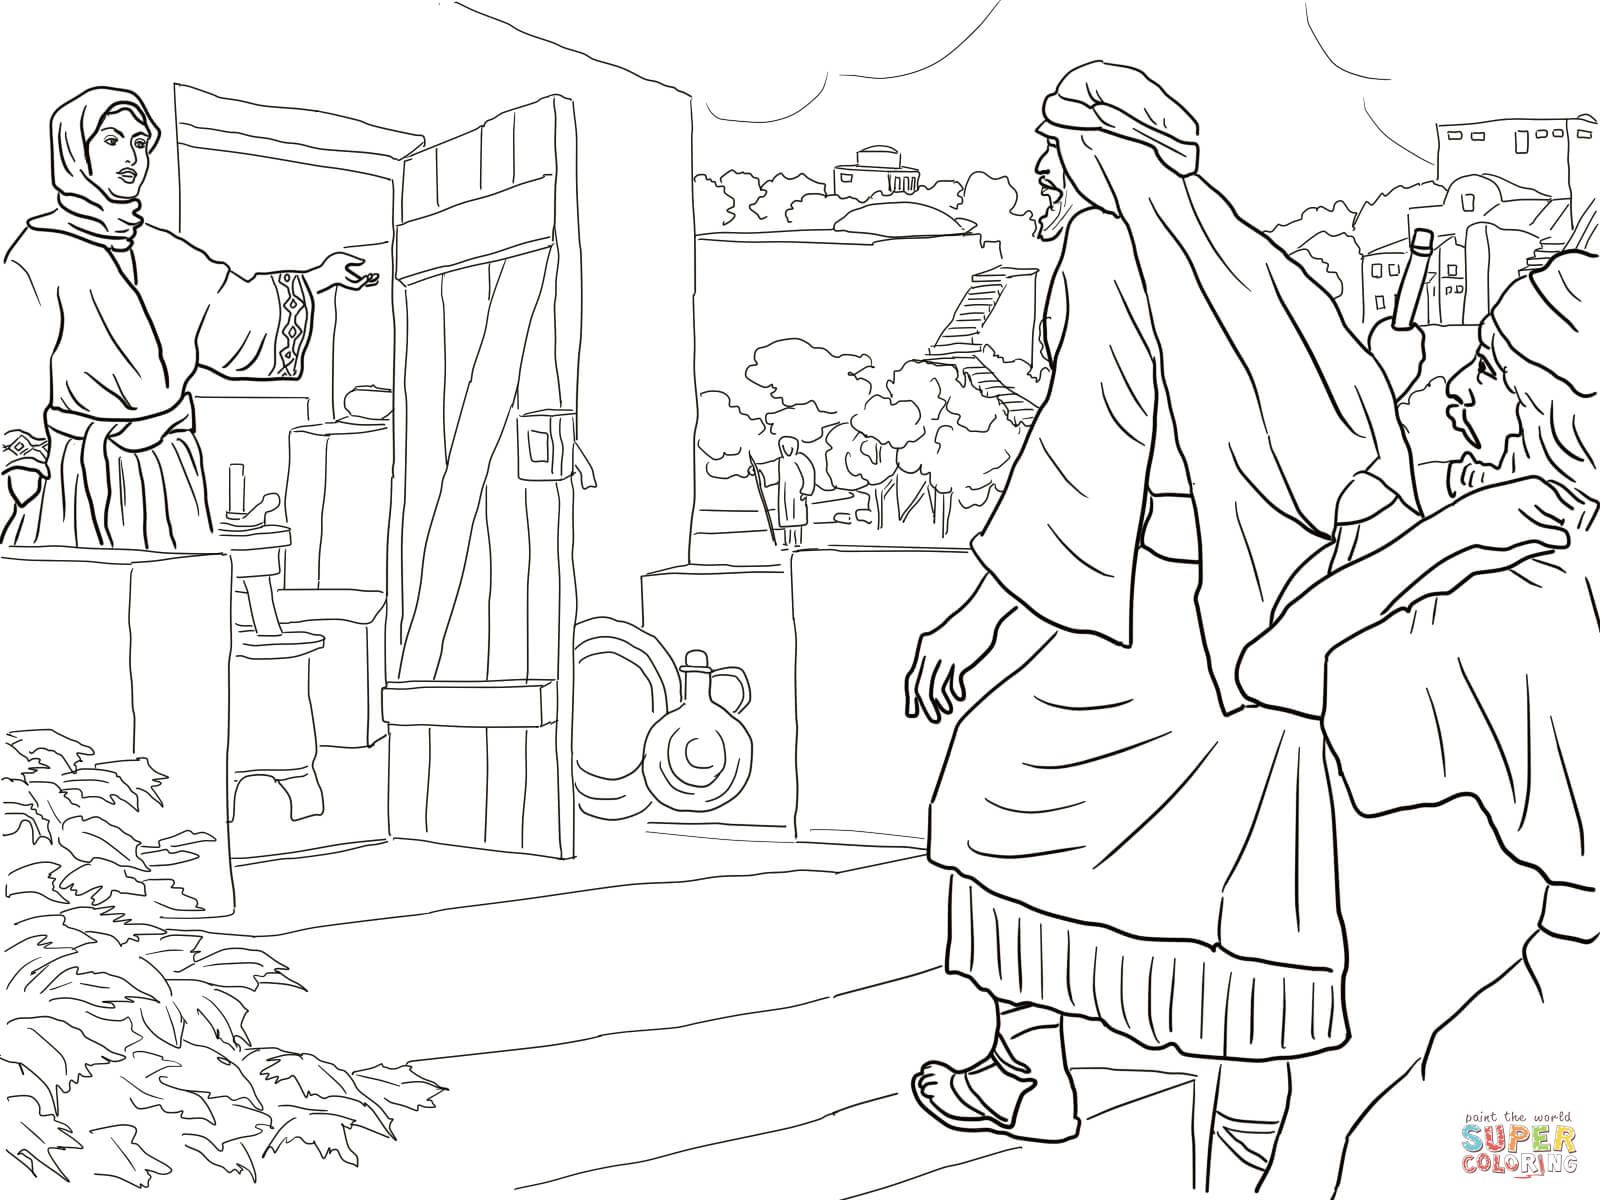 New Room Built For Elisha Coloring Page Free Printable Coloring